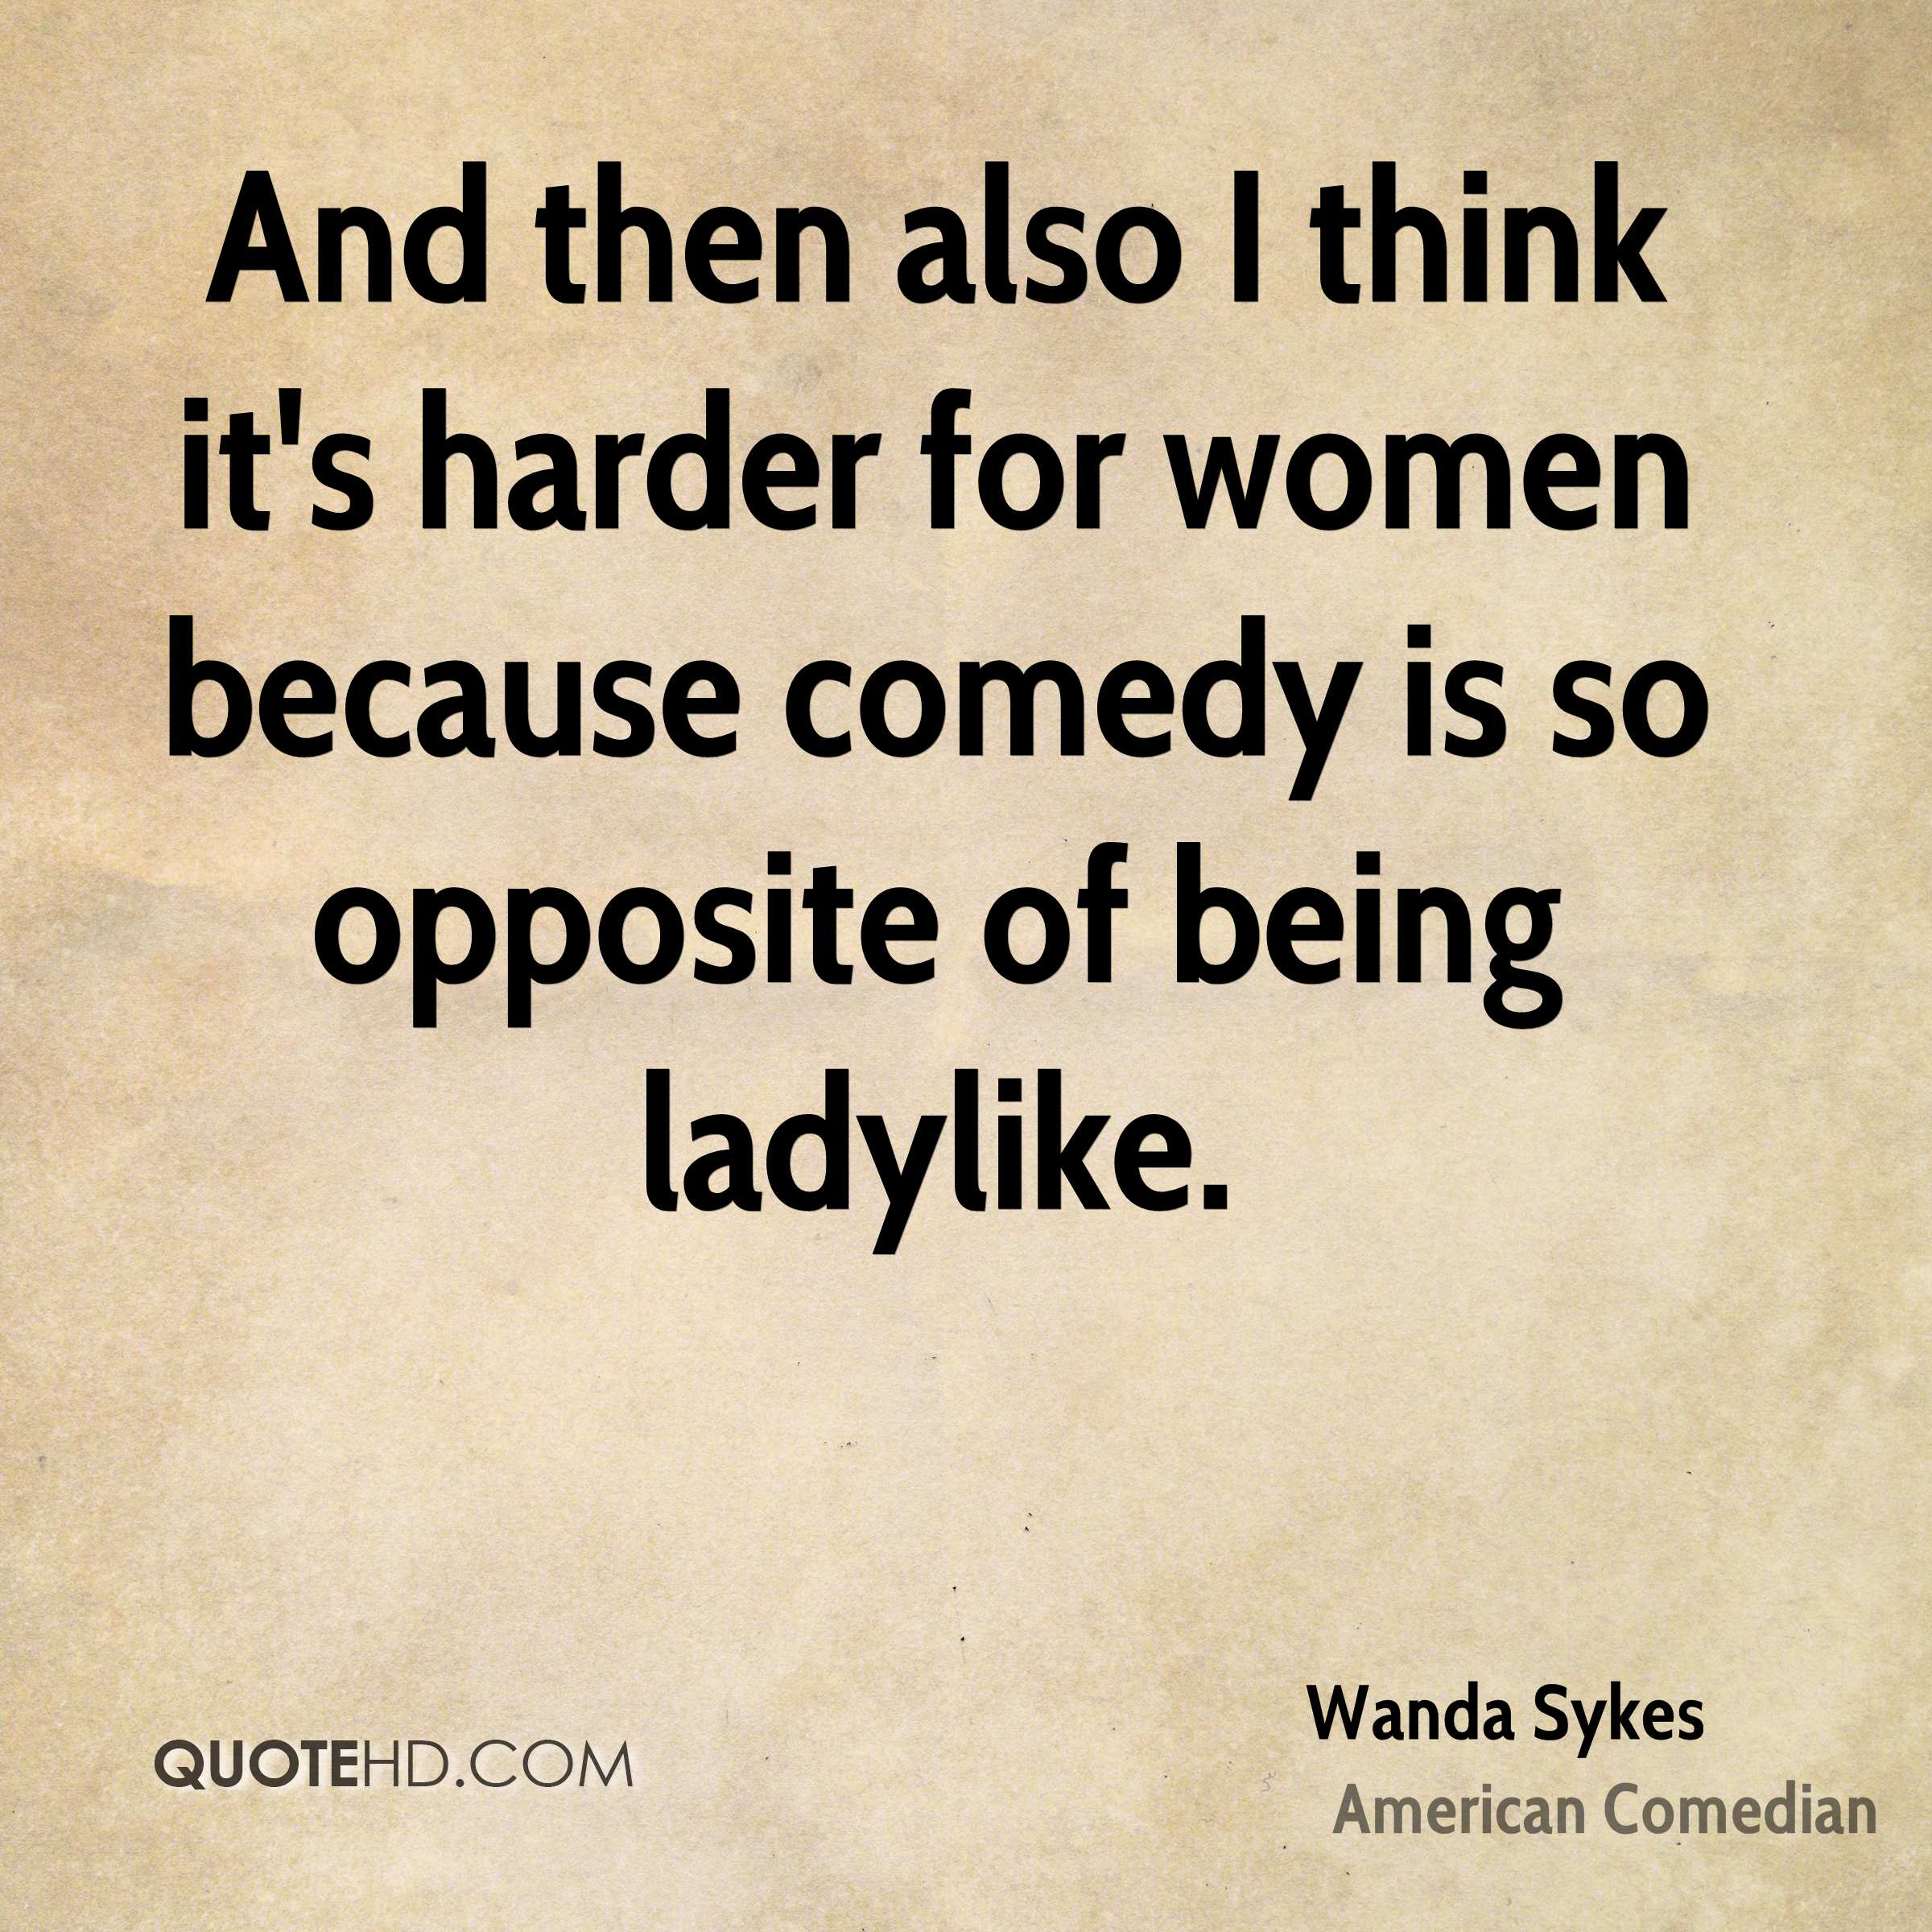 And then also I think it's harder for women because comedy is so opposite of being ladylike.